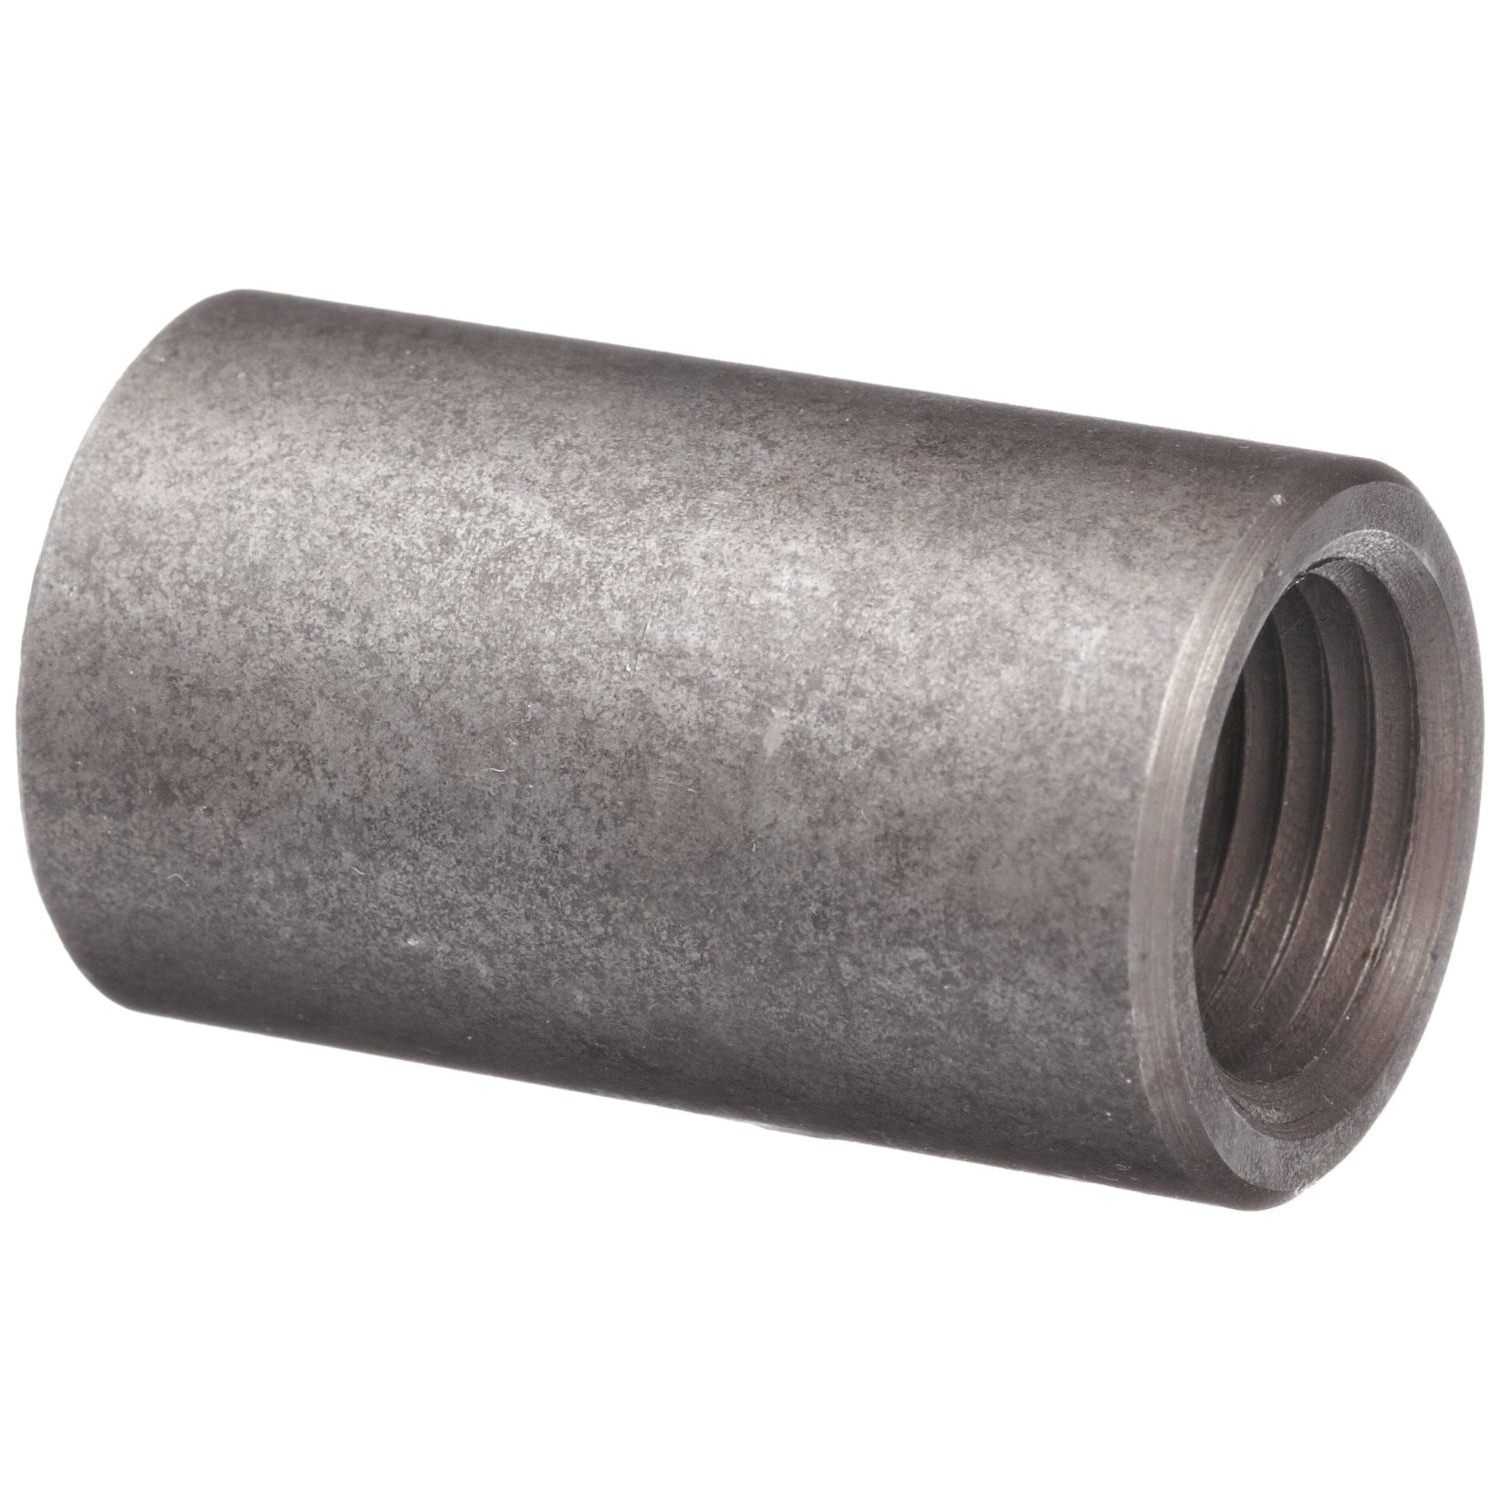 Steel Class 3000 Forged Coupling, Threaded, Import